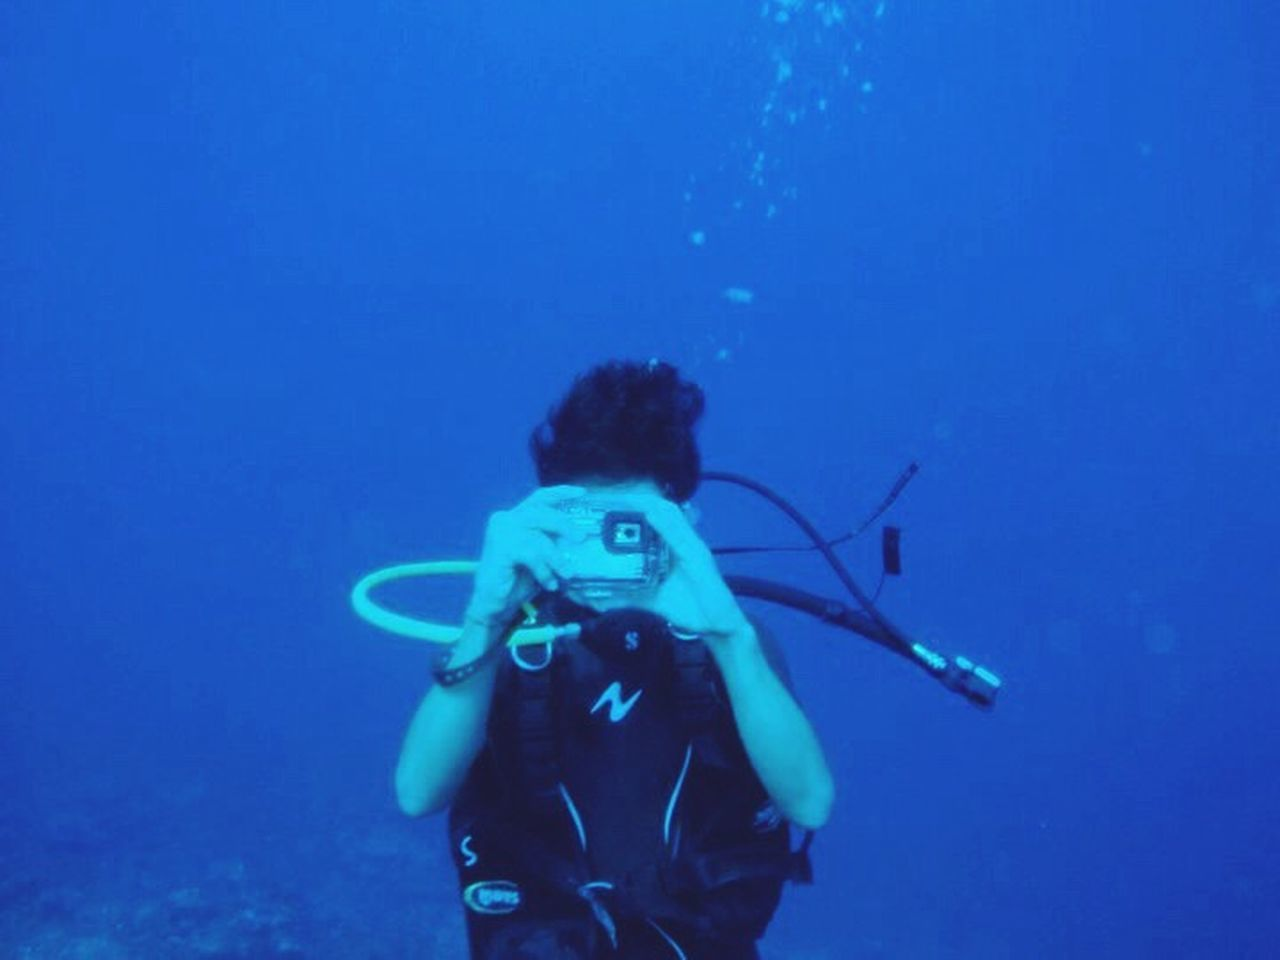 underwater, undersea, scuba diving, adventure, sea, one person, people, adults only, adult, one woman only, exploration, scuba mask, swimming, looking at camera, blue, only women, portrait, sea life, vacations, day, nature, one young woman only, young adult, outdoors